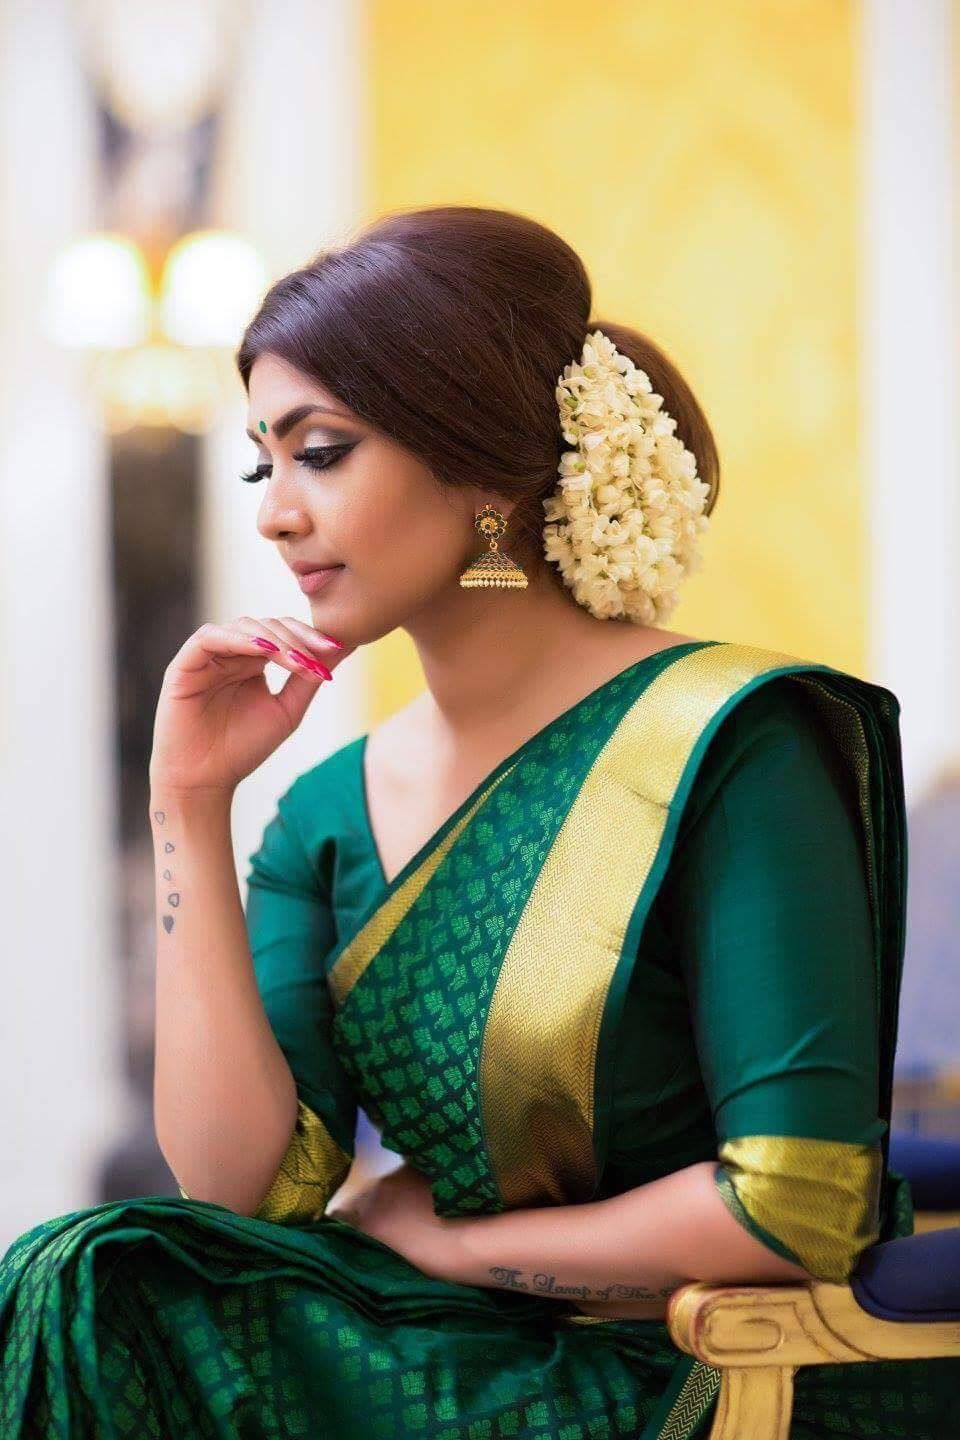 Pin by Bhiranavey Thevan on Sarees & accessories  Simple